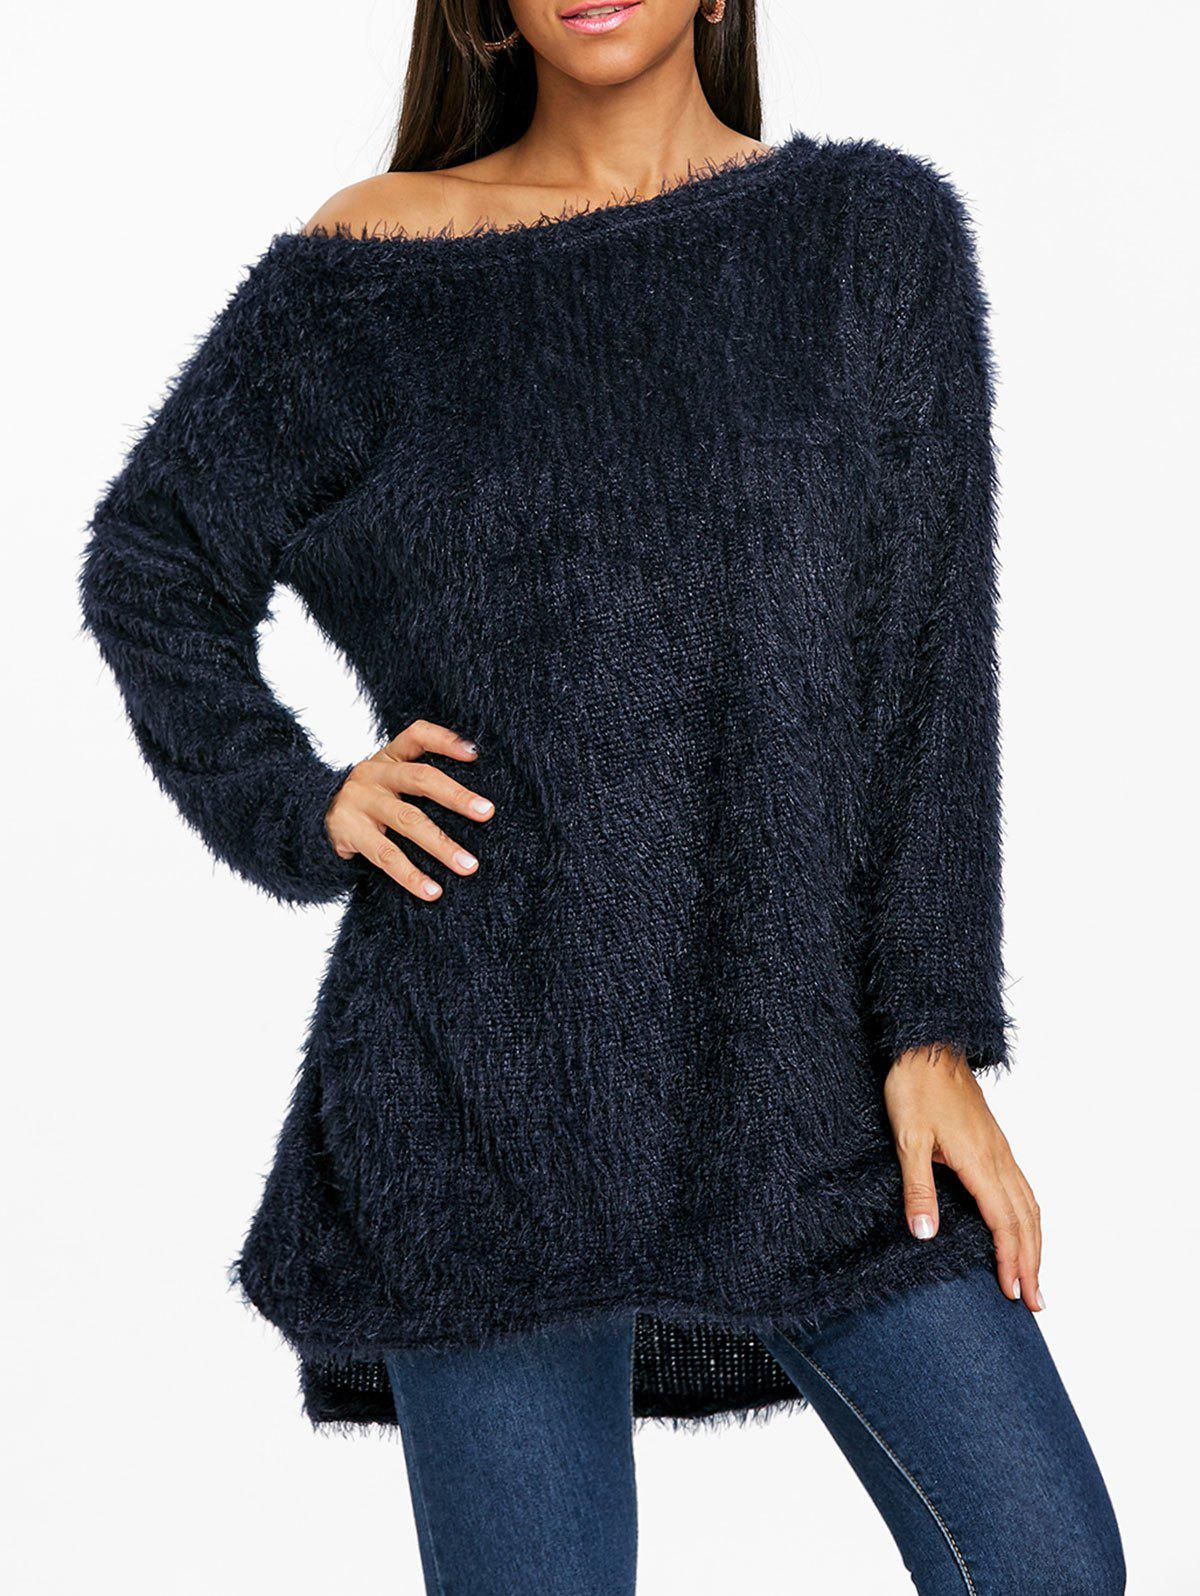 Fluffy Skew Neck Tunic Sweater - PURPLISH BLUE M